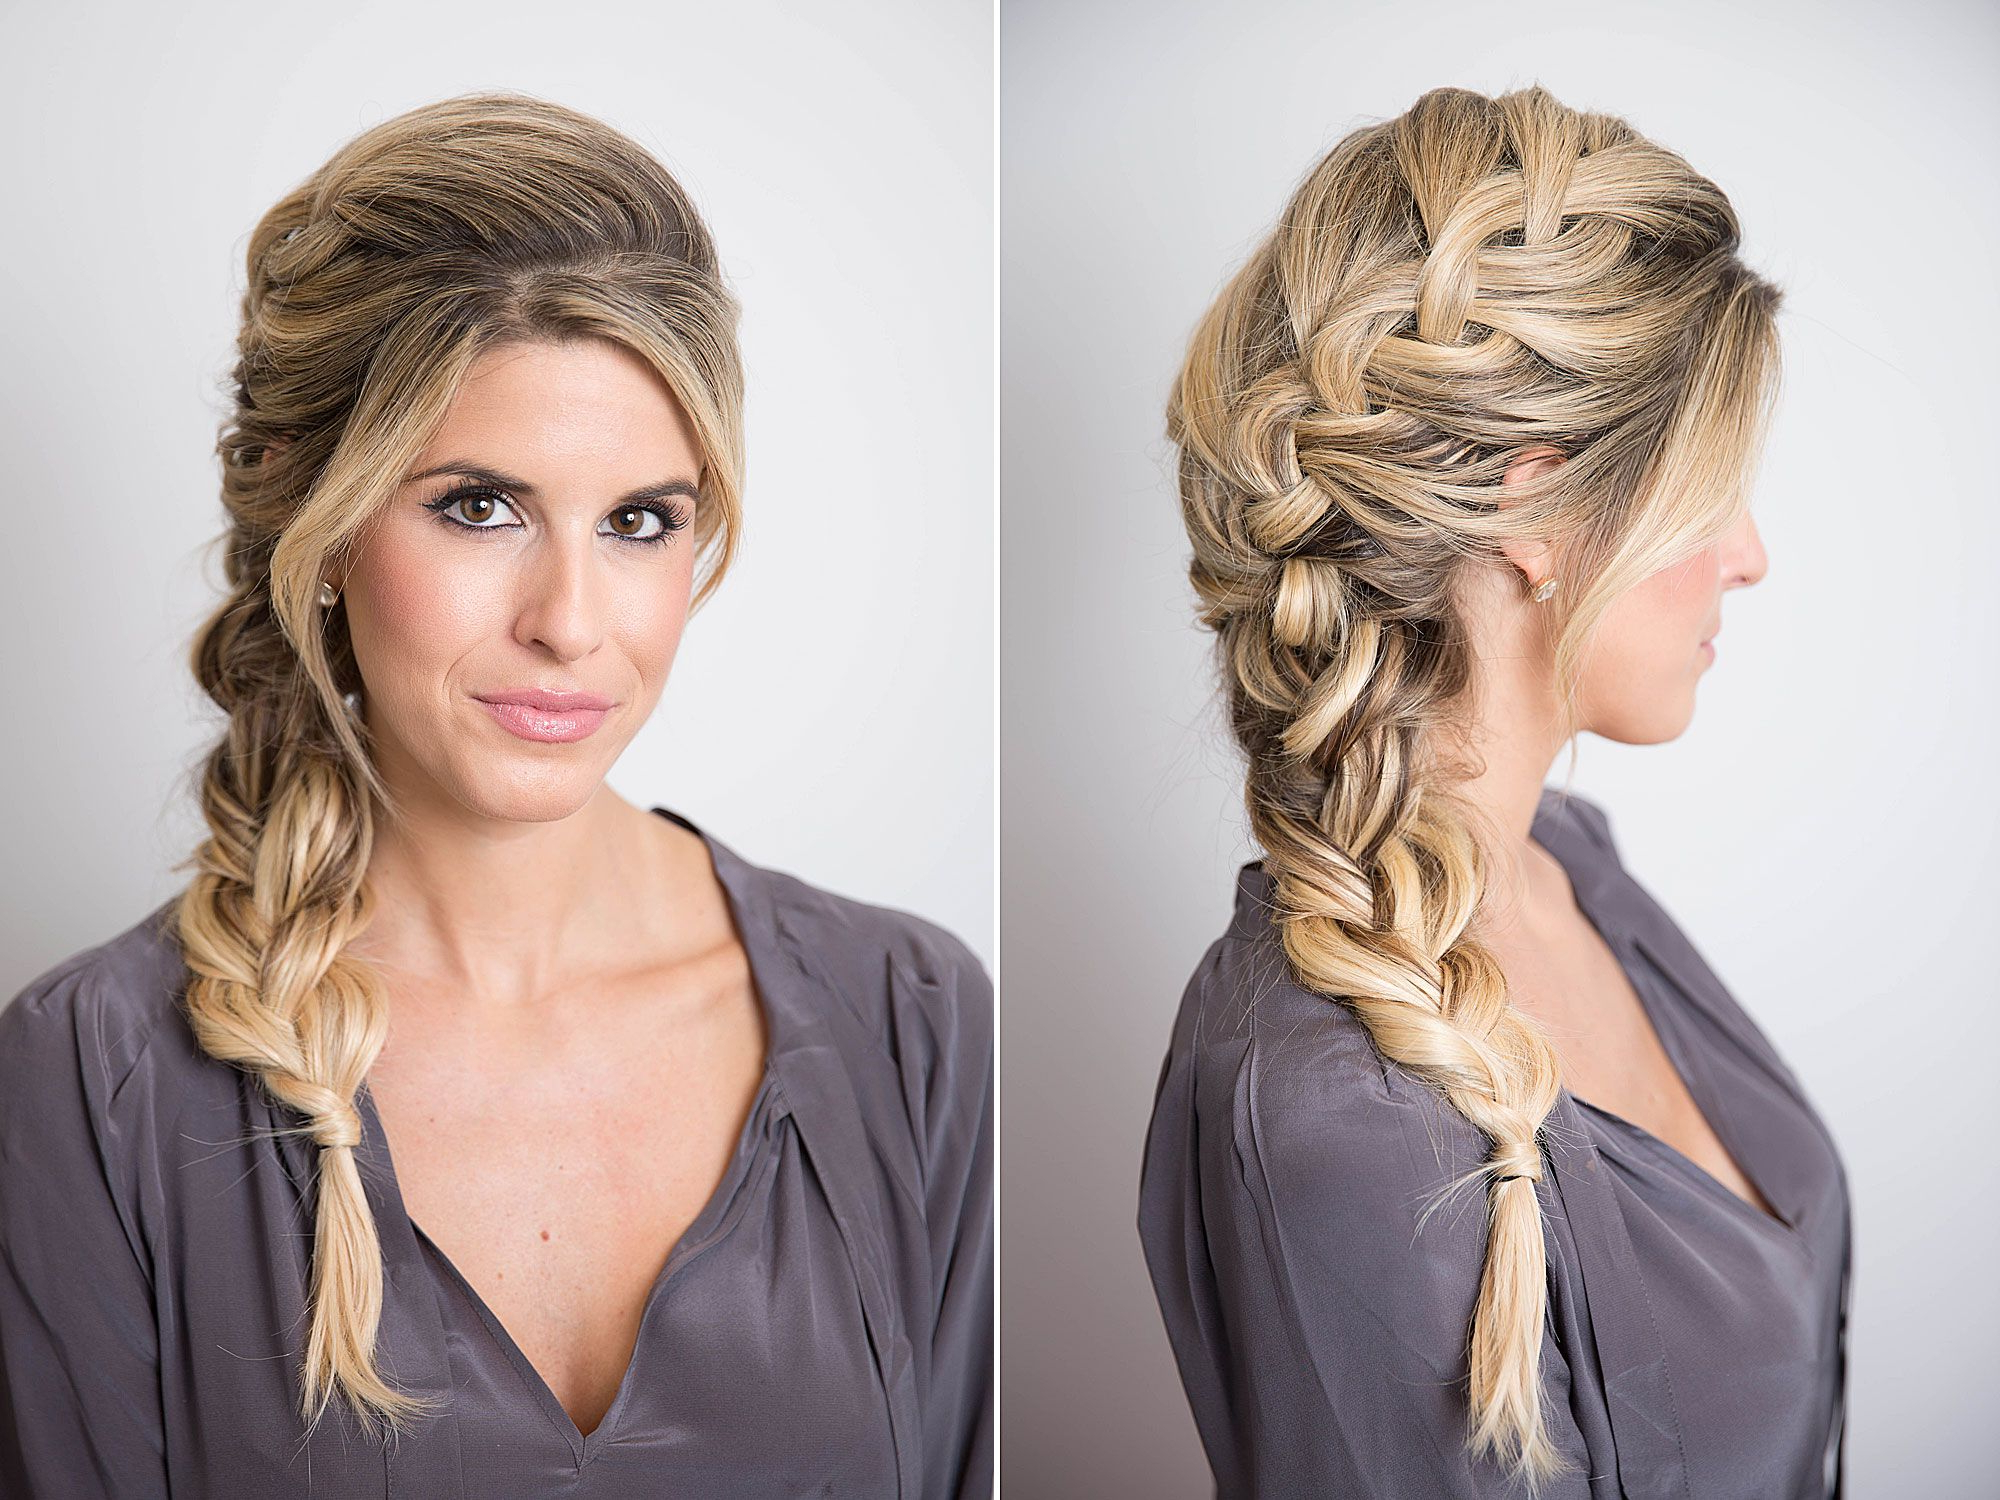 Recent Forward Braided Hairstyles With Hair Wrap Throughout 17 Braided Hairstyles With Gifs – How To Do Every Type Of Braid (View 17 of 20)